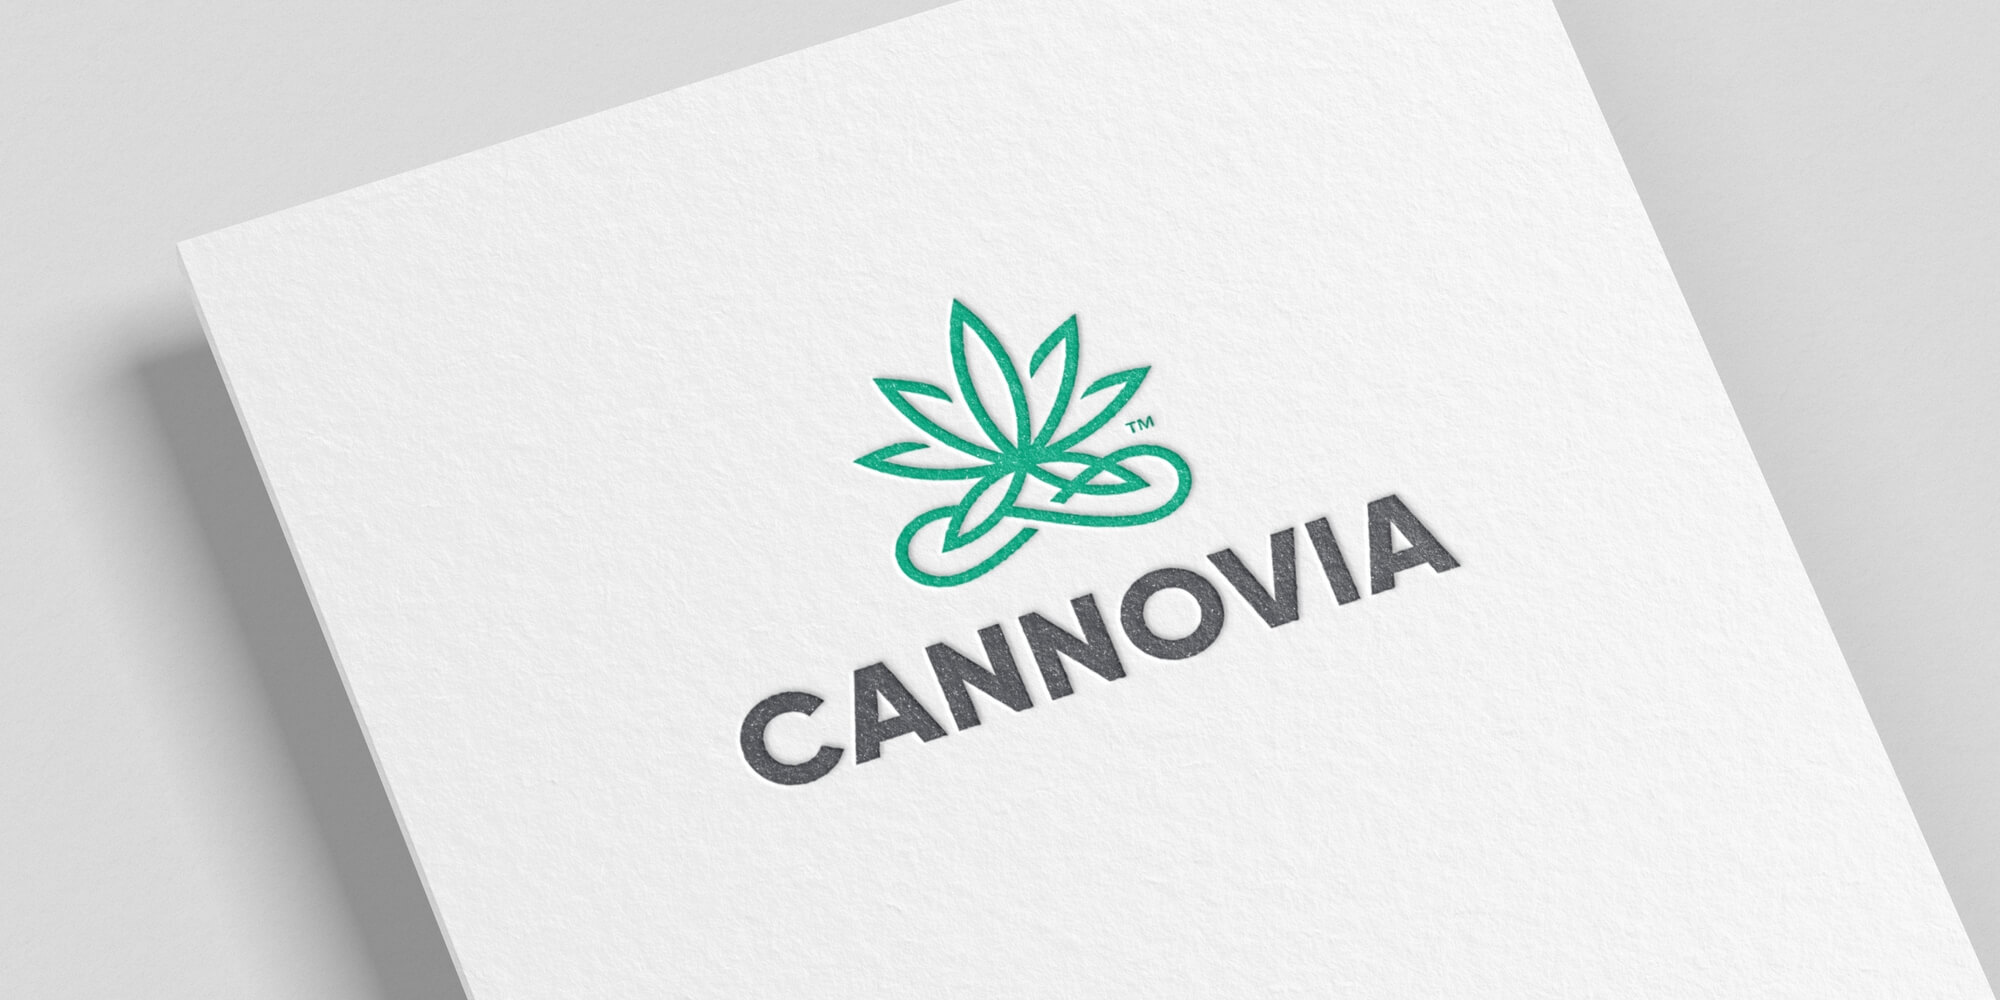 Website_Cannovia_Logo